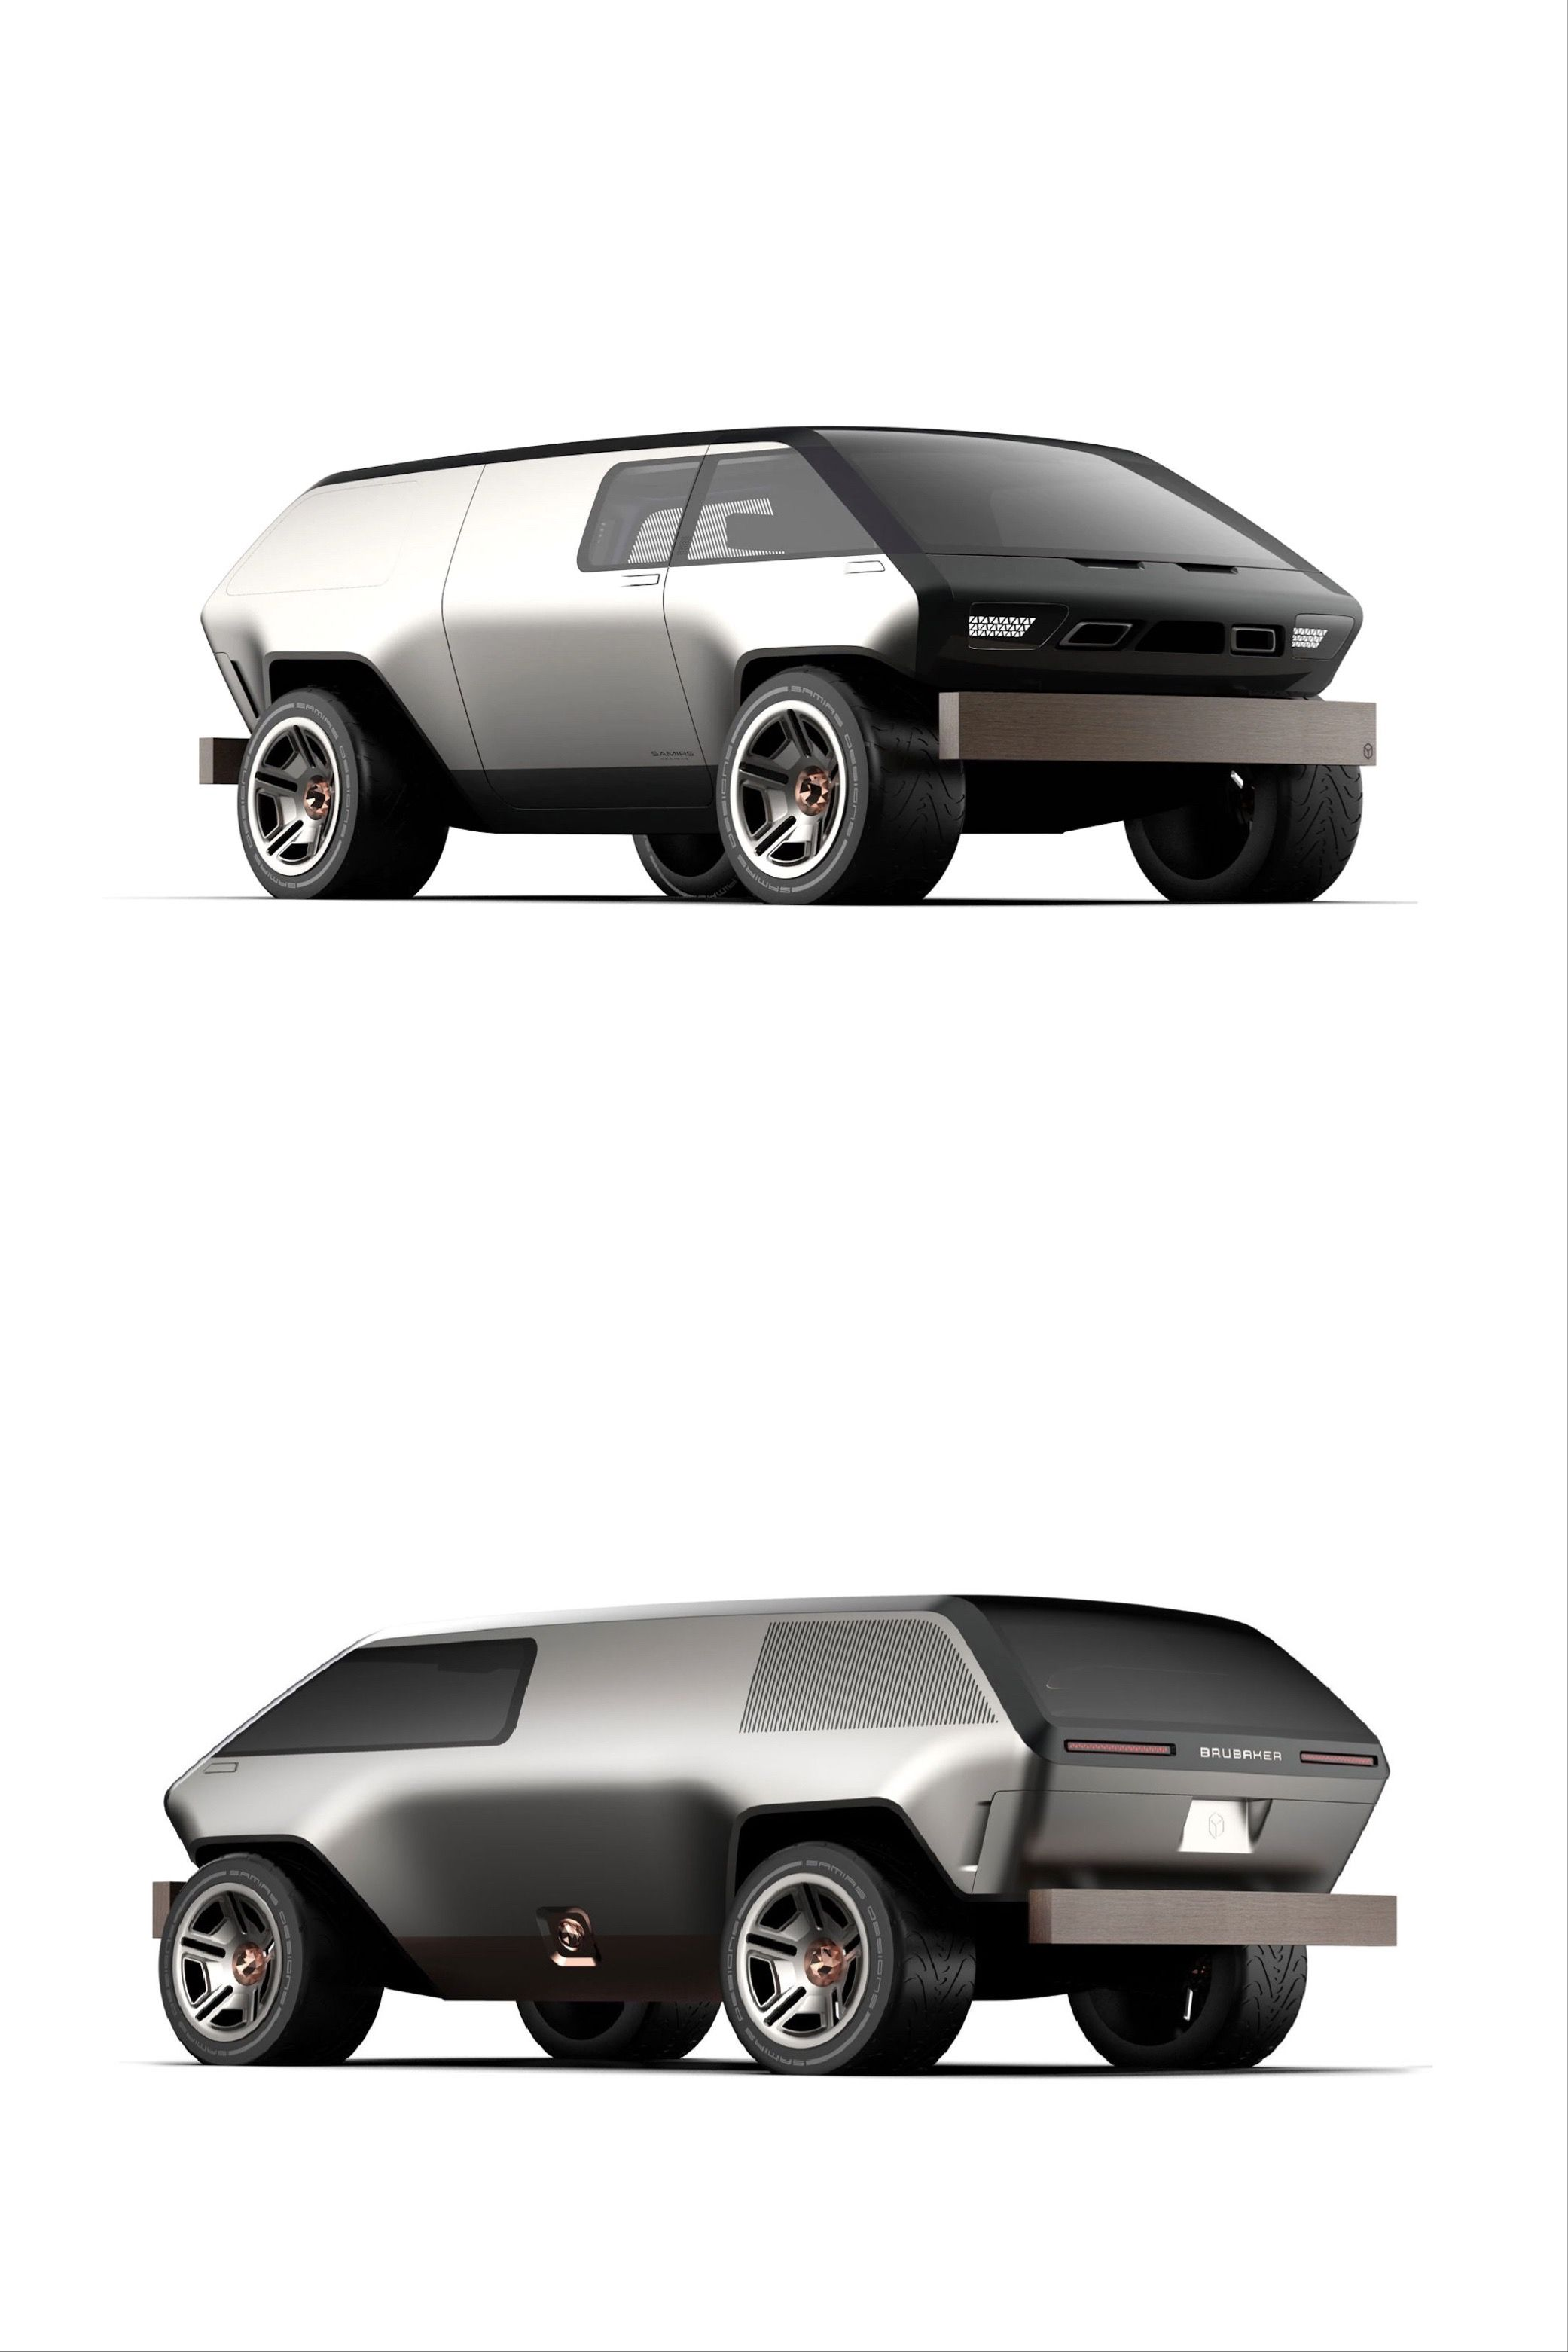 This Modern Brubaker Box Is What The World Needs Now Futuristic Cars Design Futuristic Cars Concept Car Design